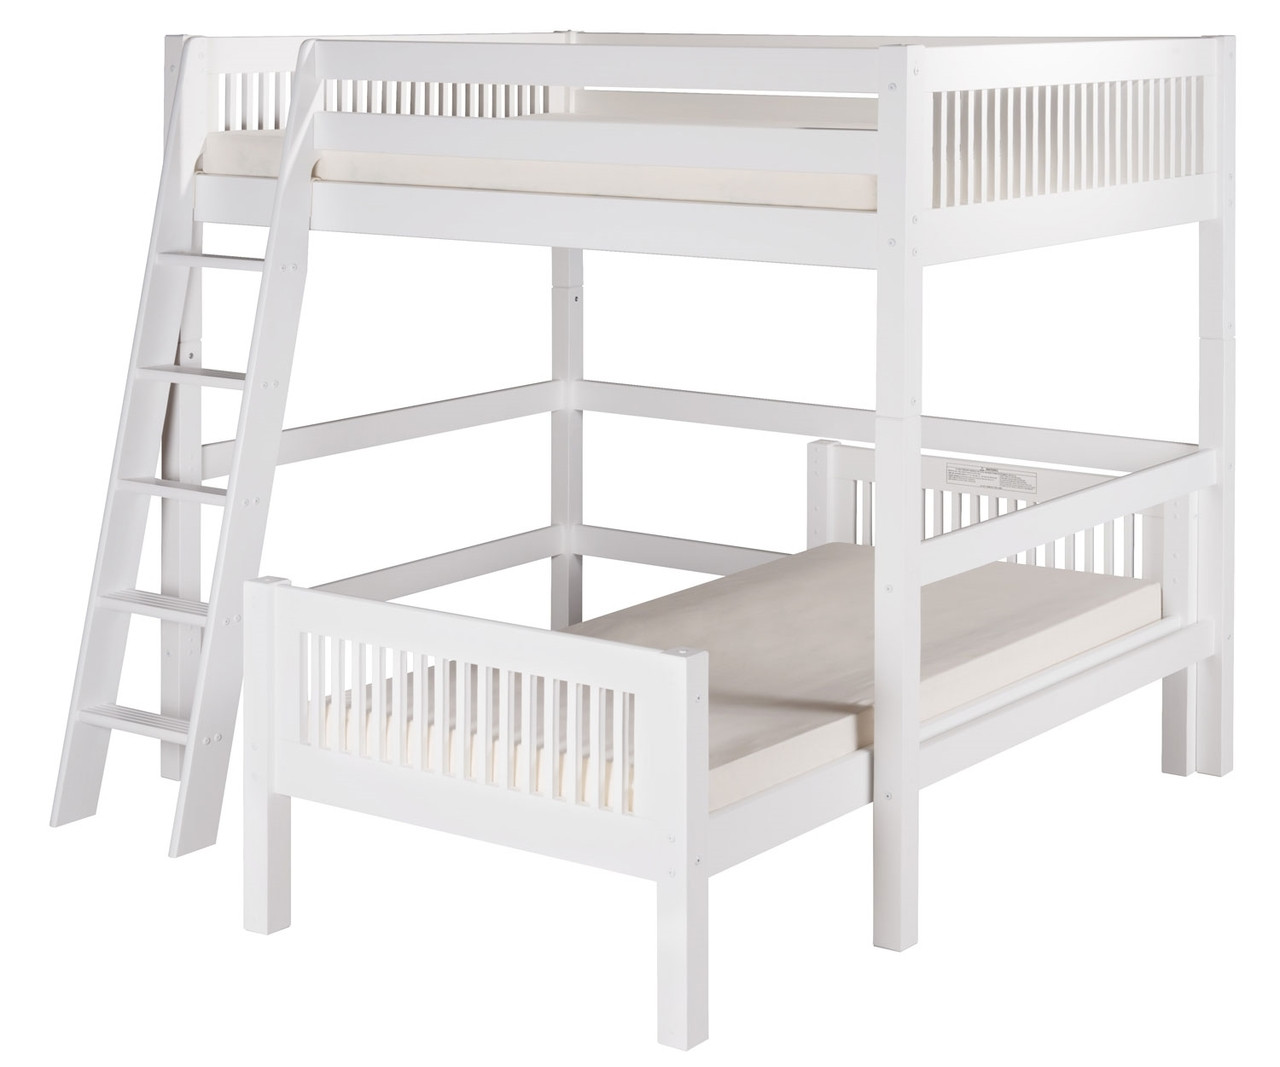 Picture of: Camaflexi Full Over Twin Size Loft Bed In White Finish E2113 Camaflexi Furniture Solid Wood Kids Furniture